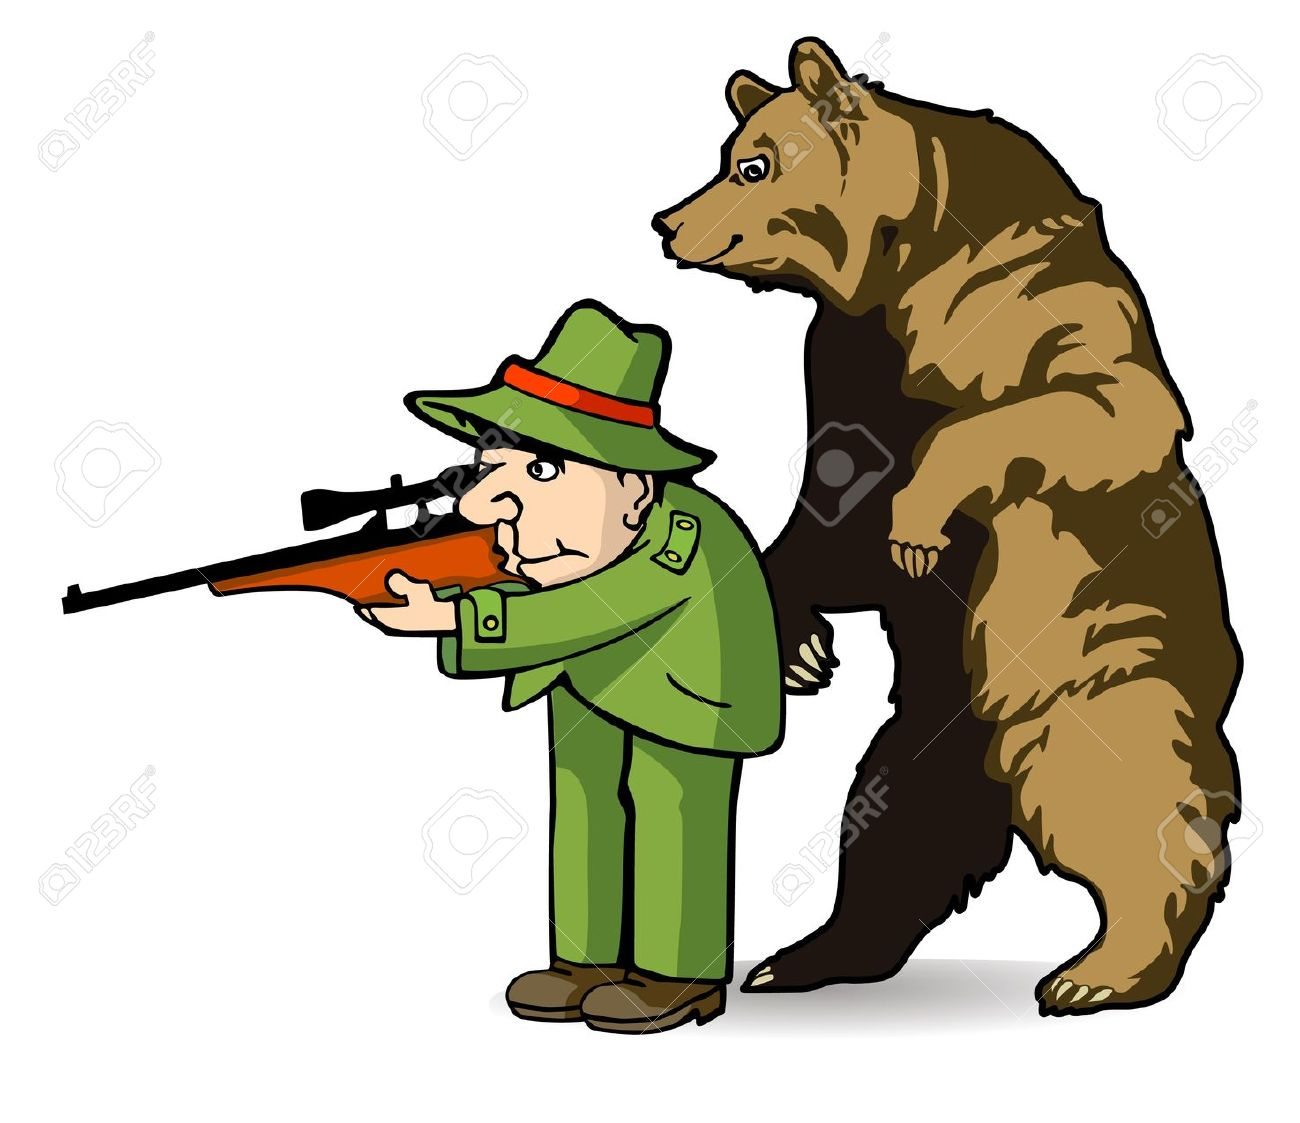 Hunting clipart bear mountain. Hunter cliparts free download